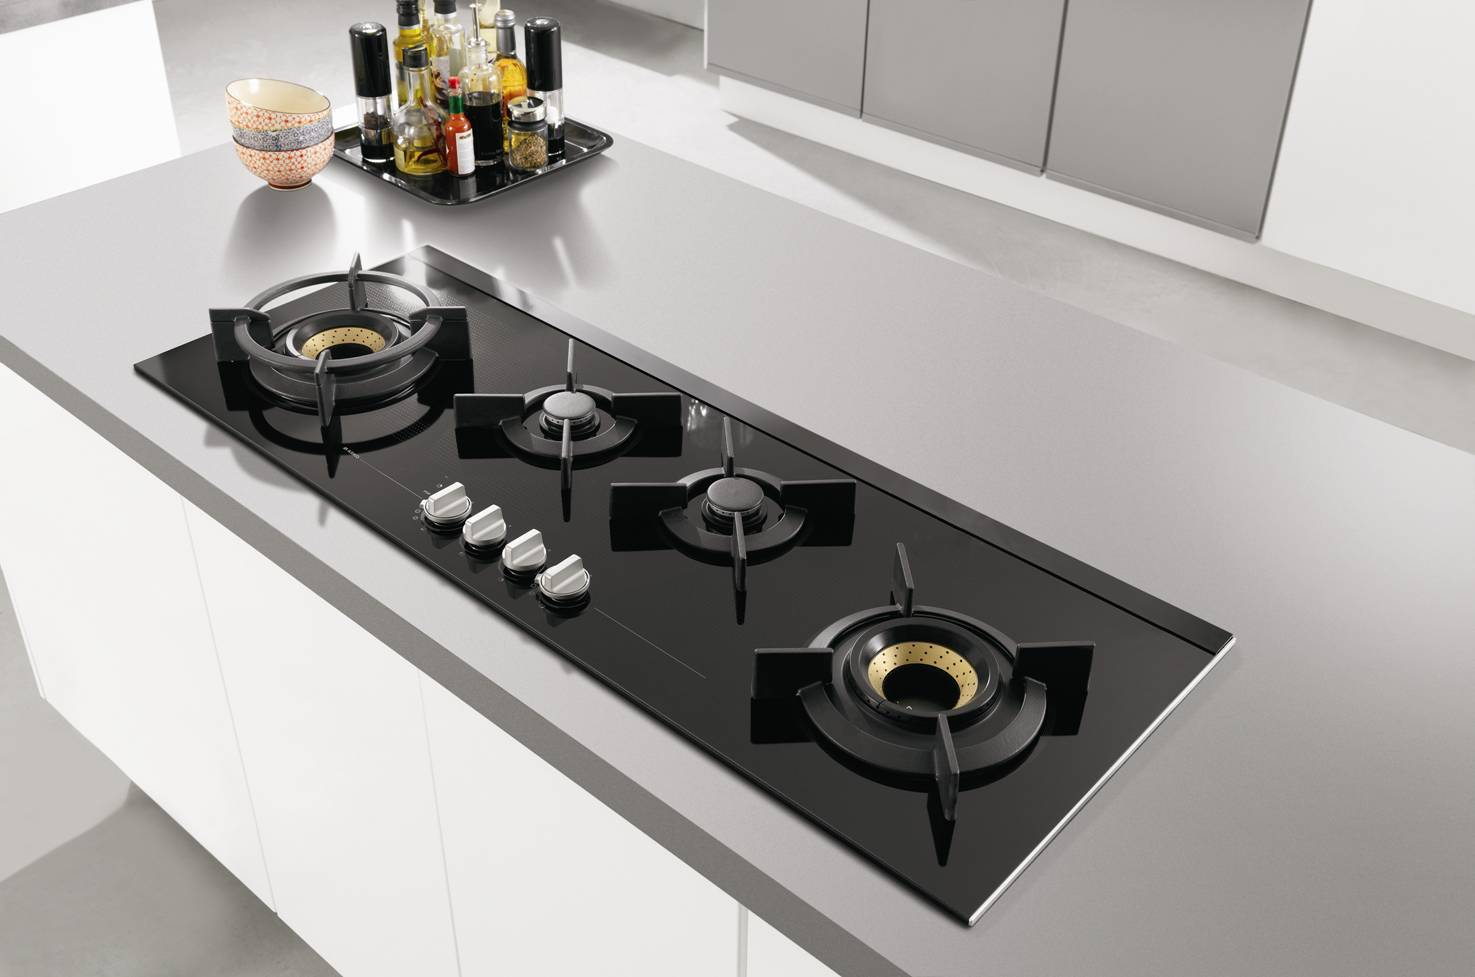 Pro series panoramic gas cooktop asko appliances pro - Plaque induction 4 feux ...